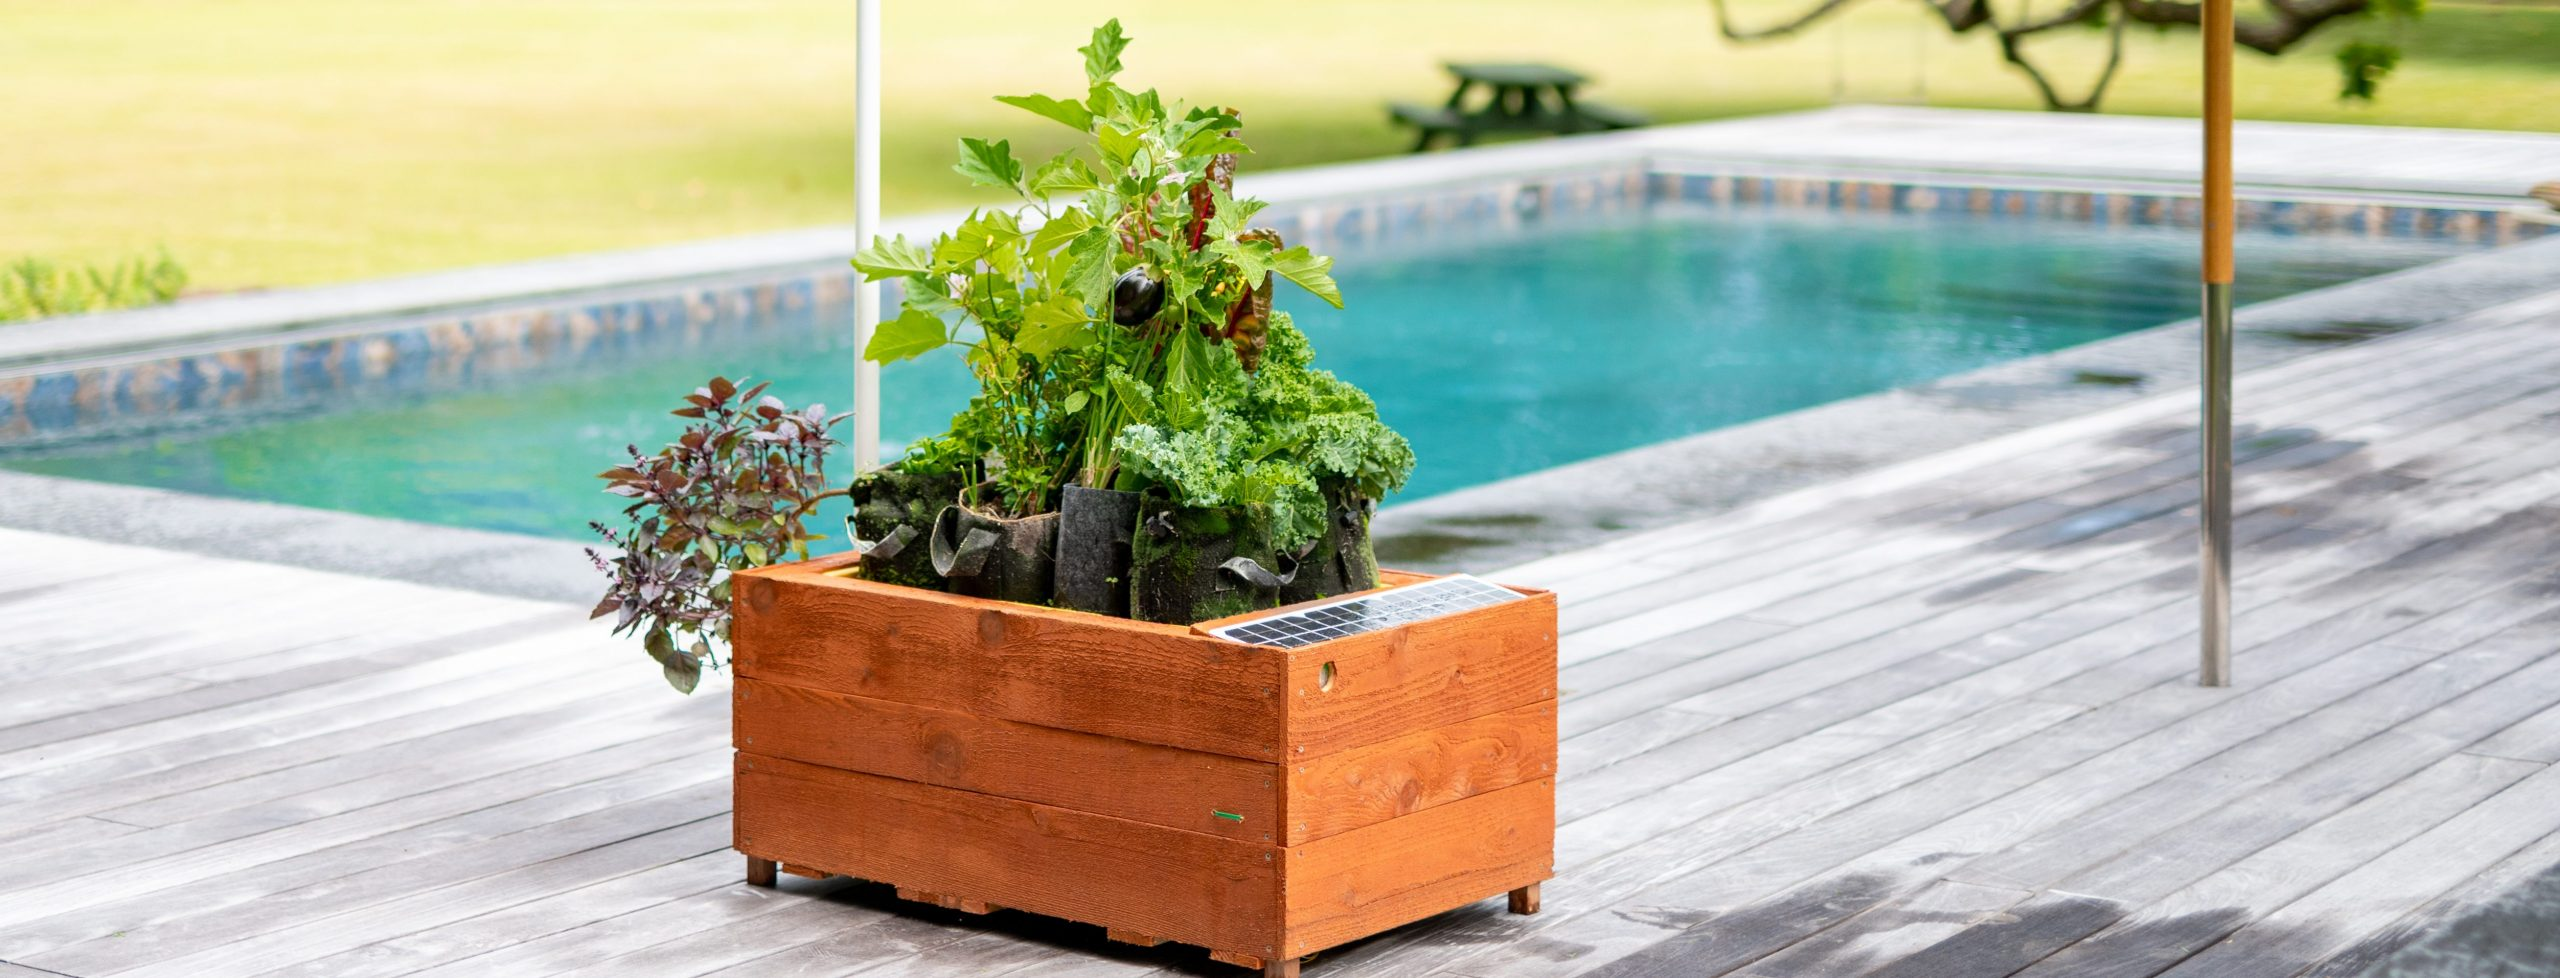 GrowBot by the poolside